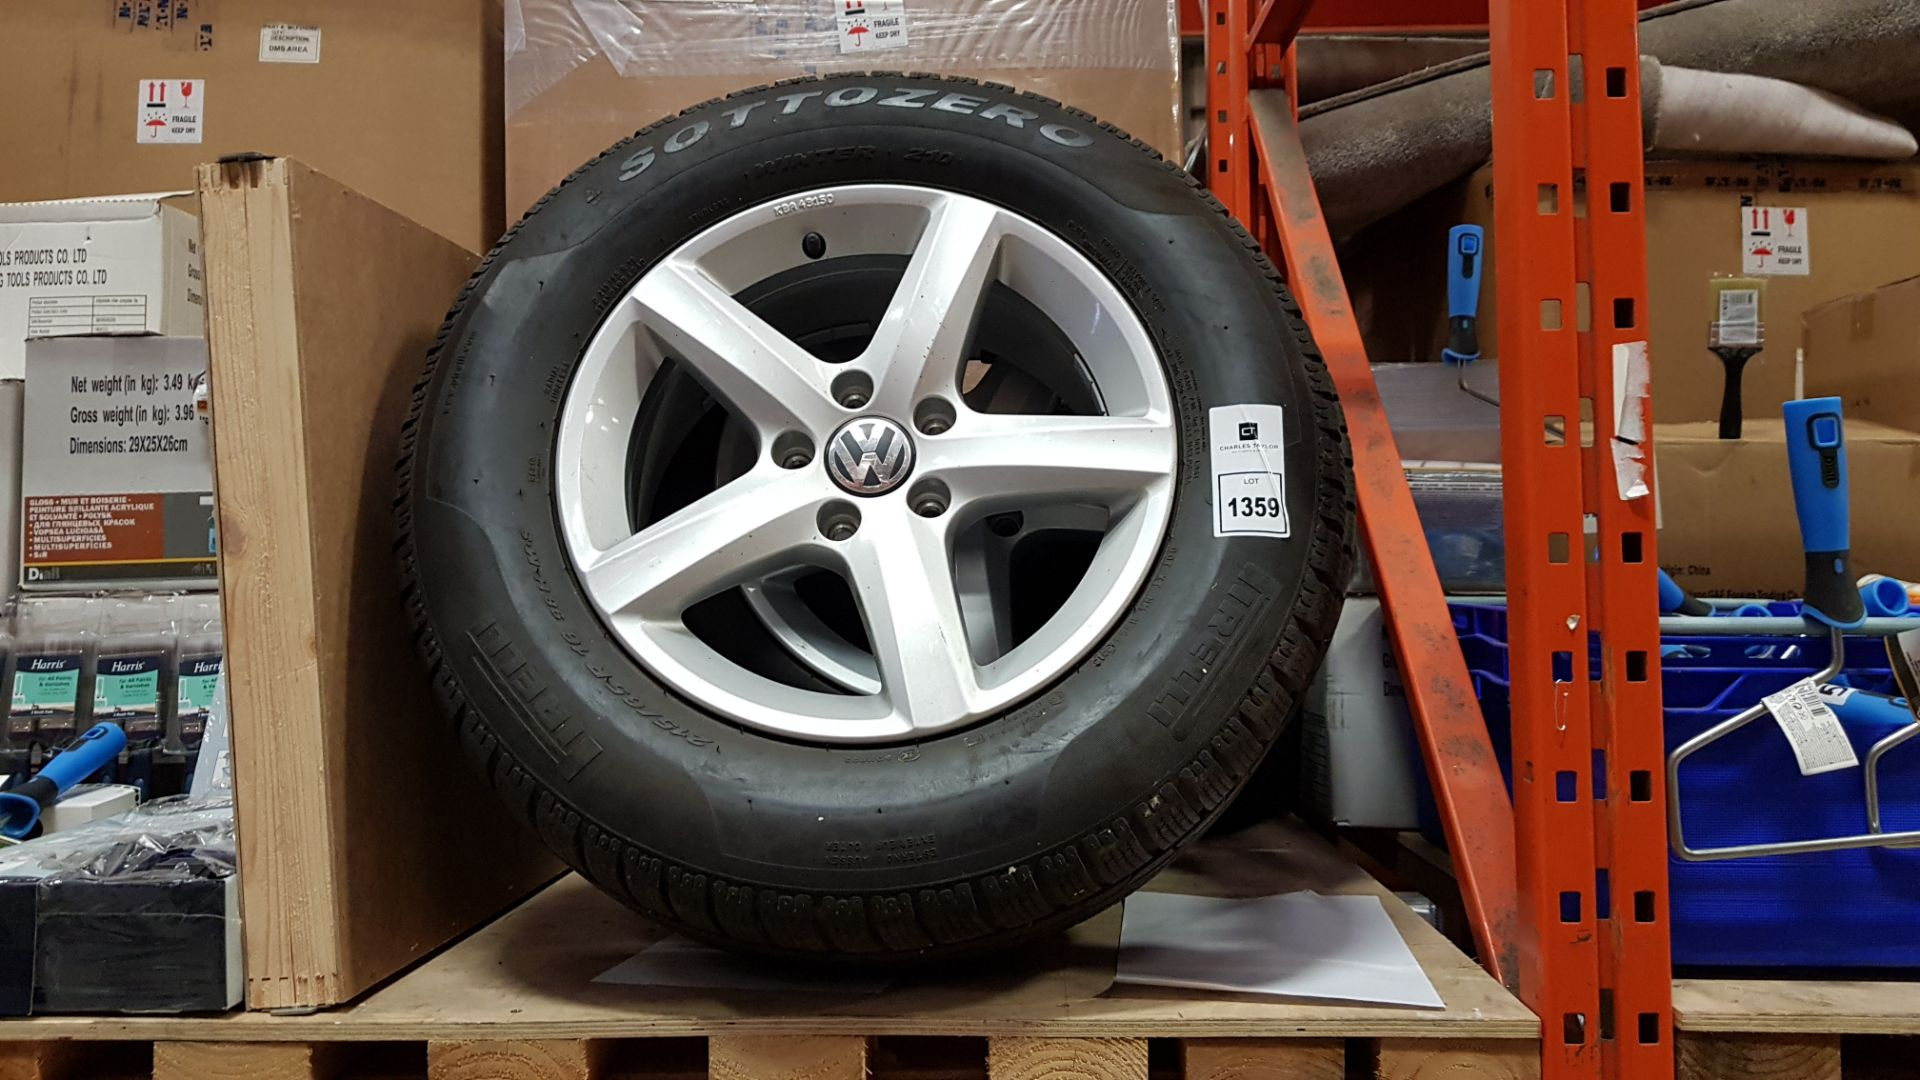 4 X MATCHING VW ALLOYS WITH PIRELLI TYRES - SIZE/215/65R 16 98H MS